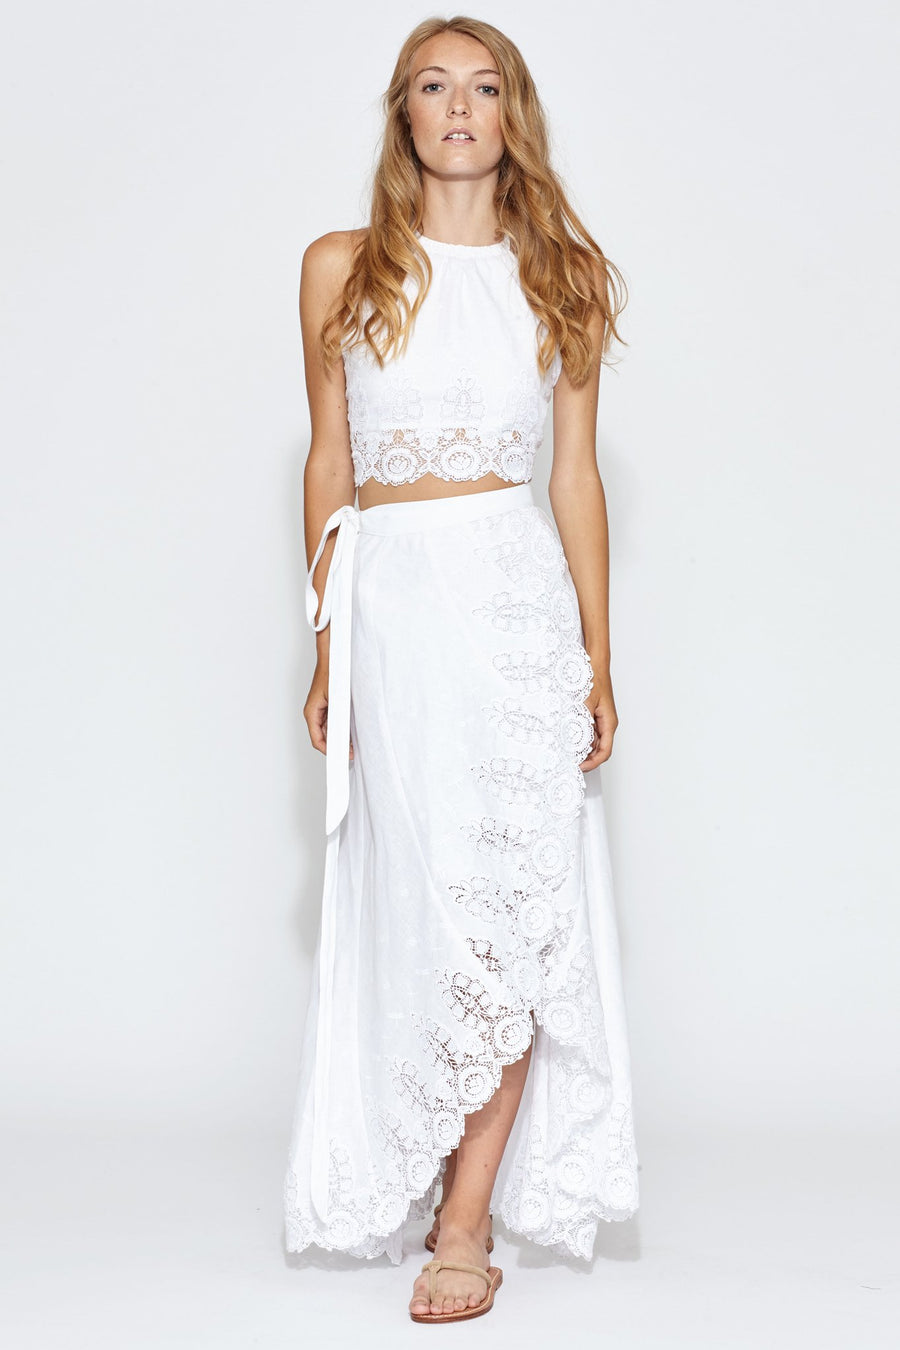 This is a photo of a woman wearing a white linen and lace two piece set with halter crop top and wrap maxi skirt with tie on one side.